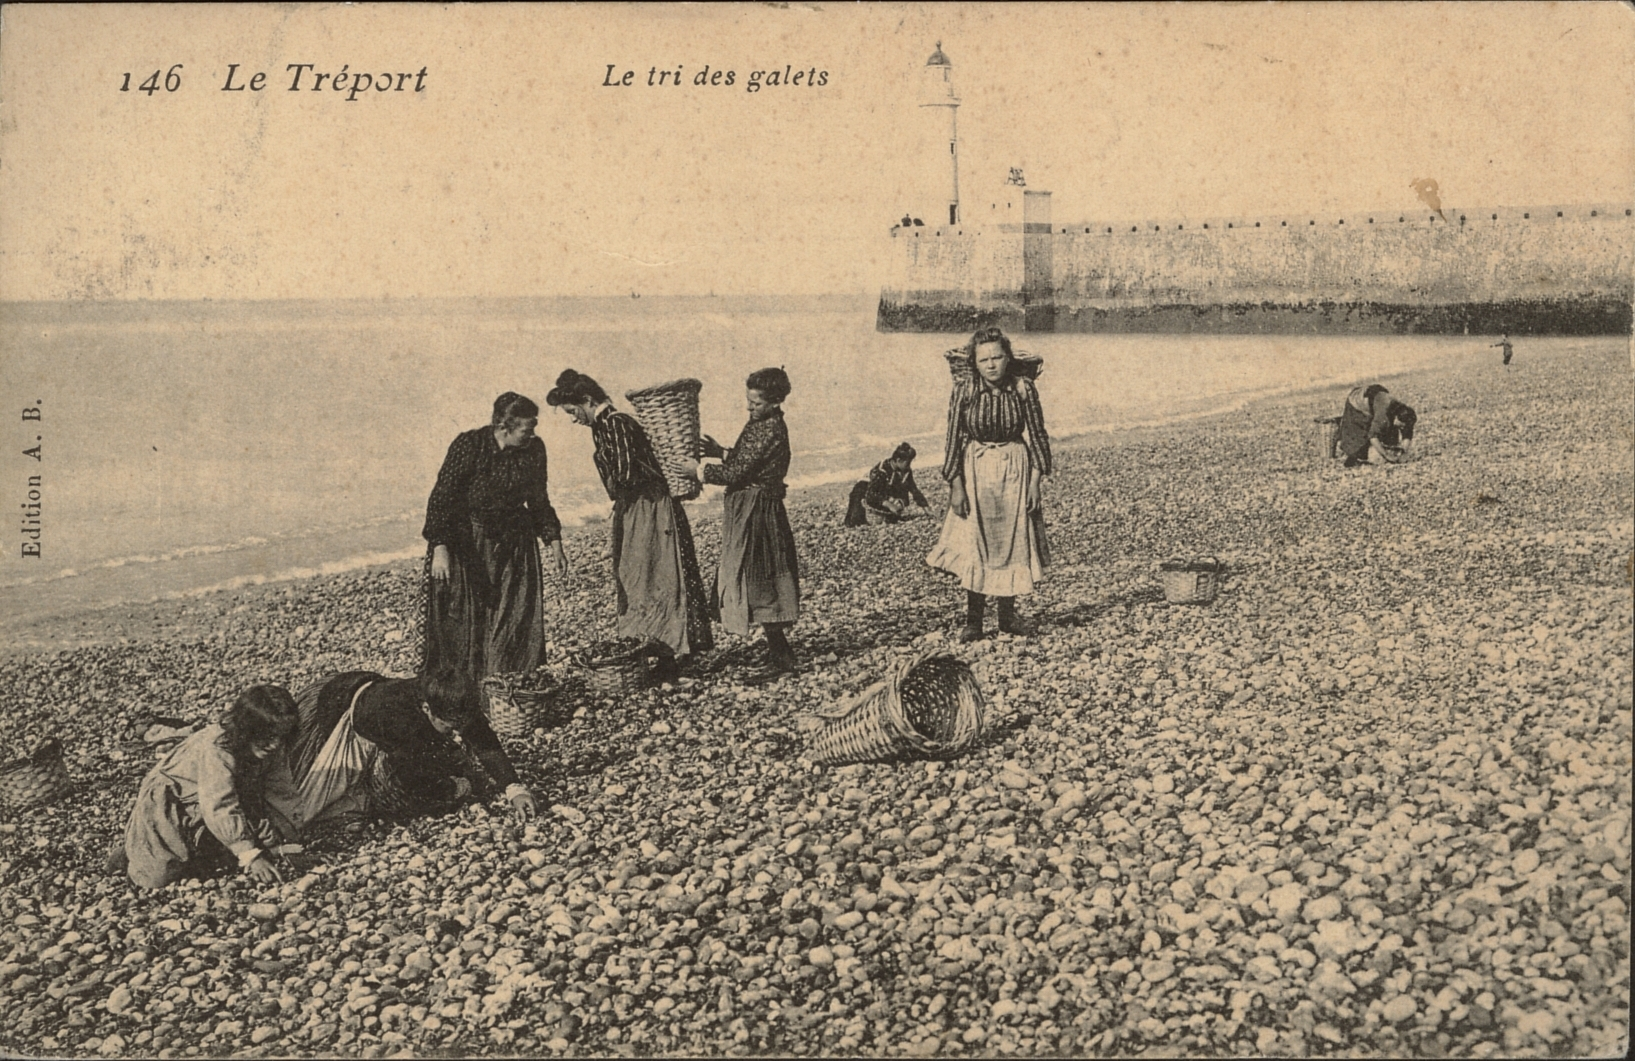 Le Treport - le tri des galets (sorting pebbles) early 1900s